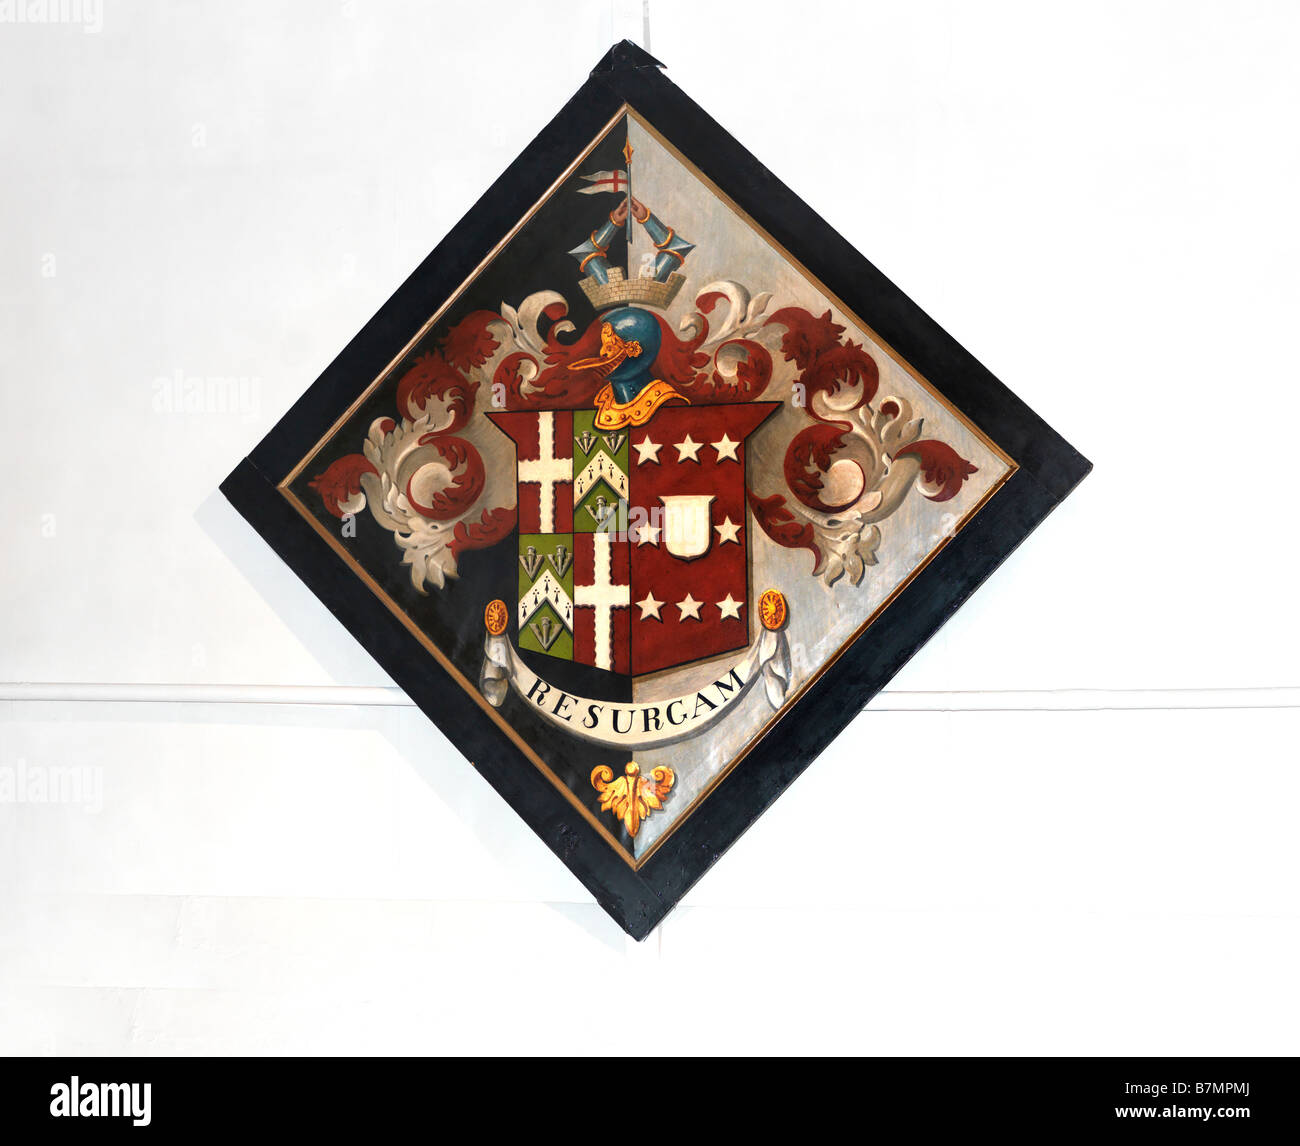 Hachment Heraldry with the words Resurgum Latin for I shall rise again St Lawrence Church Morden Surrey England - Stock Image